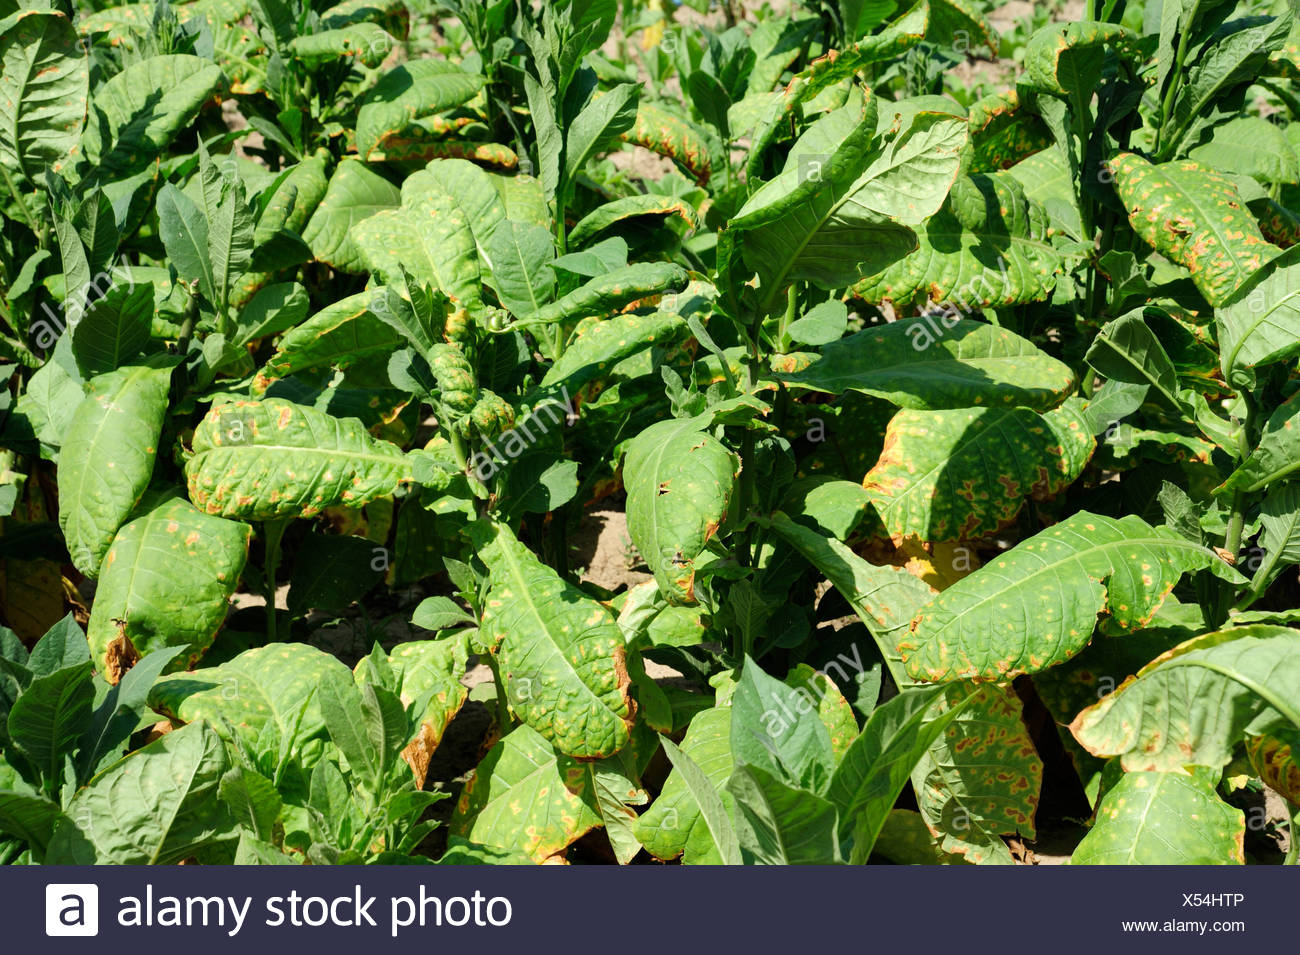 Tobacco leaves, tobacco plants (Nicotiana), tobacco plantation,  province, Cuba, Greater Antilles, Caribbean, Central America - Stock Image